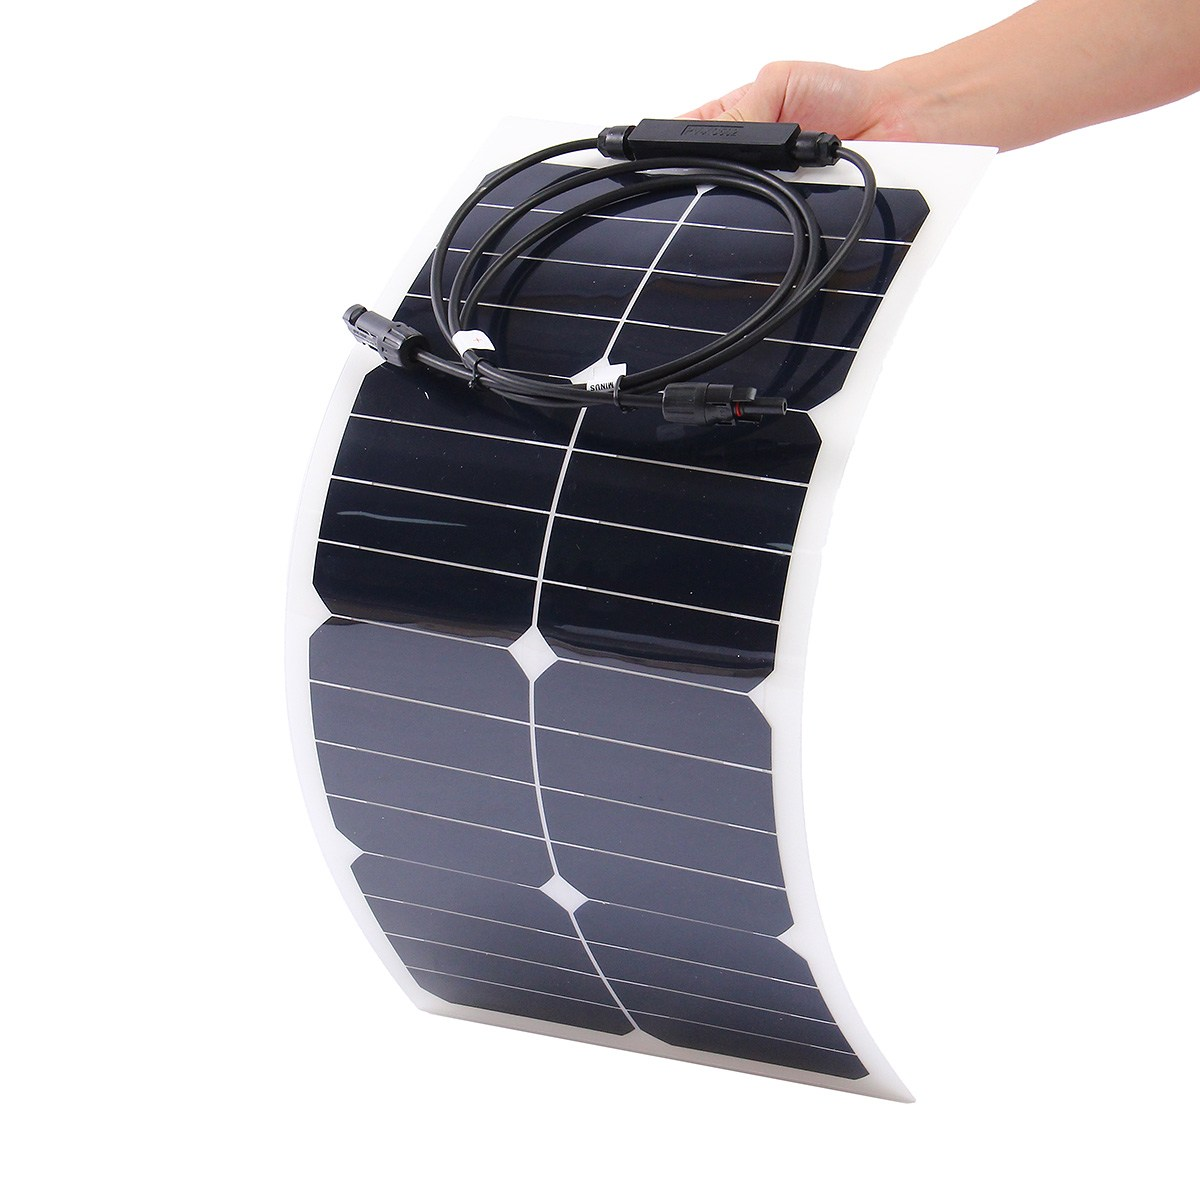 KINCO 25W 18V Semi Flexible Monocrystalline Sunpower Solar Panels DIY High Conversion Efficiency Solar Battery For Car Battery sp 36 120w 12v semi flexible monocrystalline solar panel waterproof high conversion efficiency for rv boat car 1 5m cable